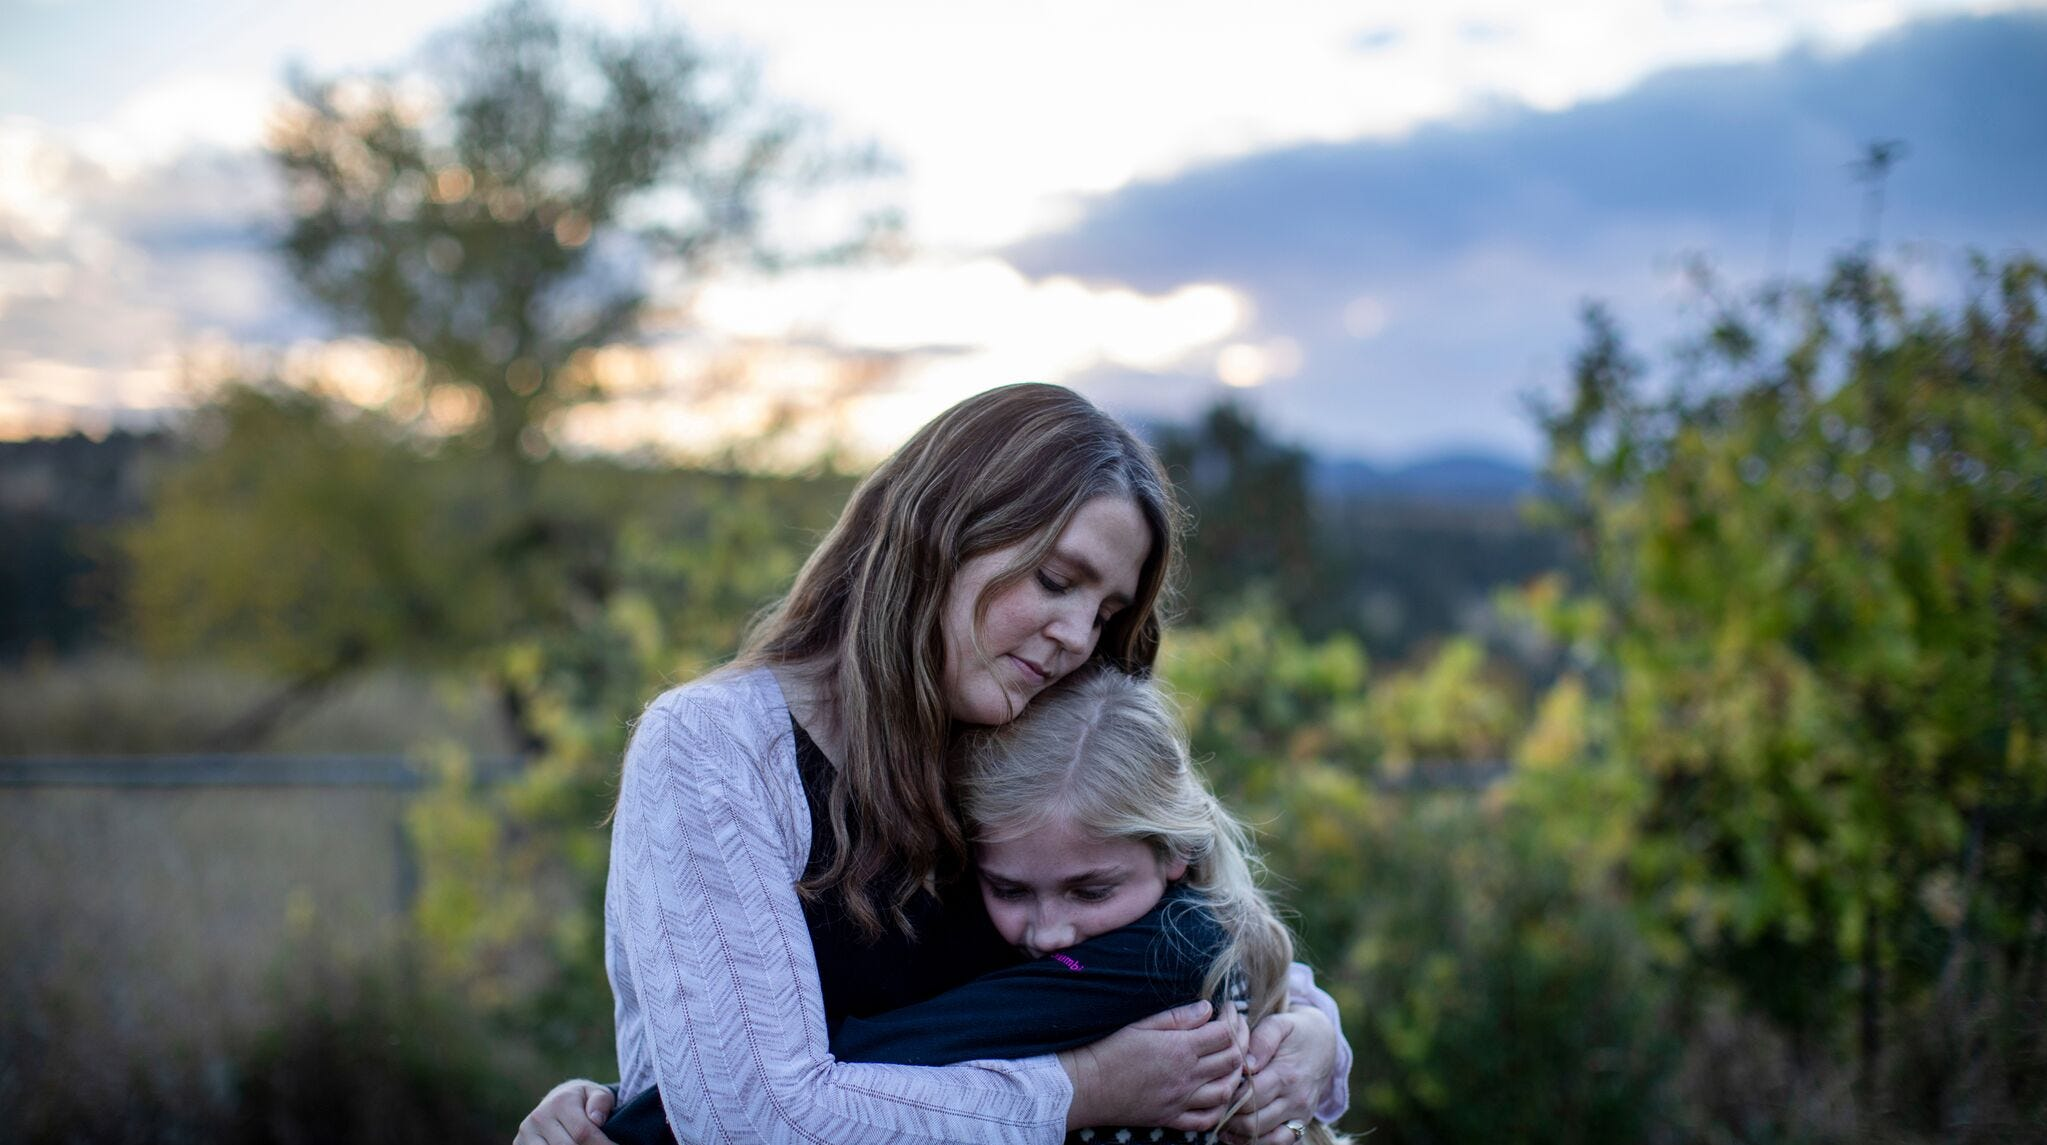 Kristen  Kilmer  hugs  her  12-year-old  daughter  at  their  home  in  Spearfish,  South Dakota. Kilmer has relied on precision medicine to treat her breast cancer, but the approach is expensive, and there are no guarantees her insurer will keep covering it.